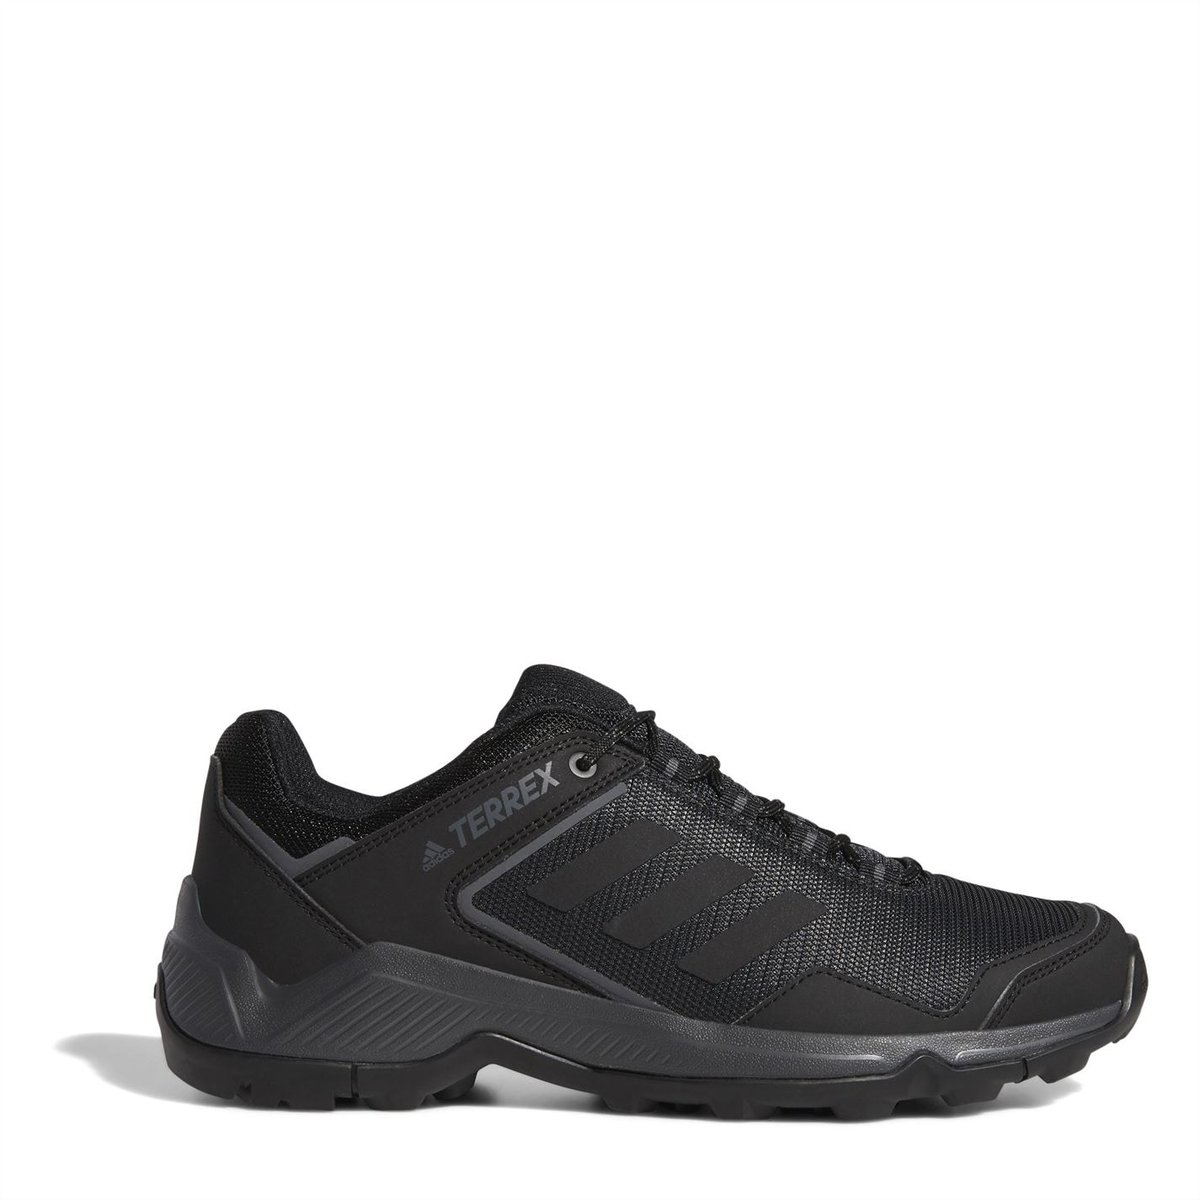 Eastrail Hiking Shoes Men